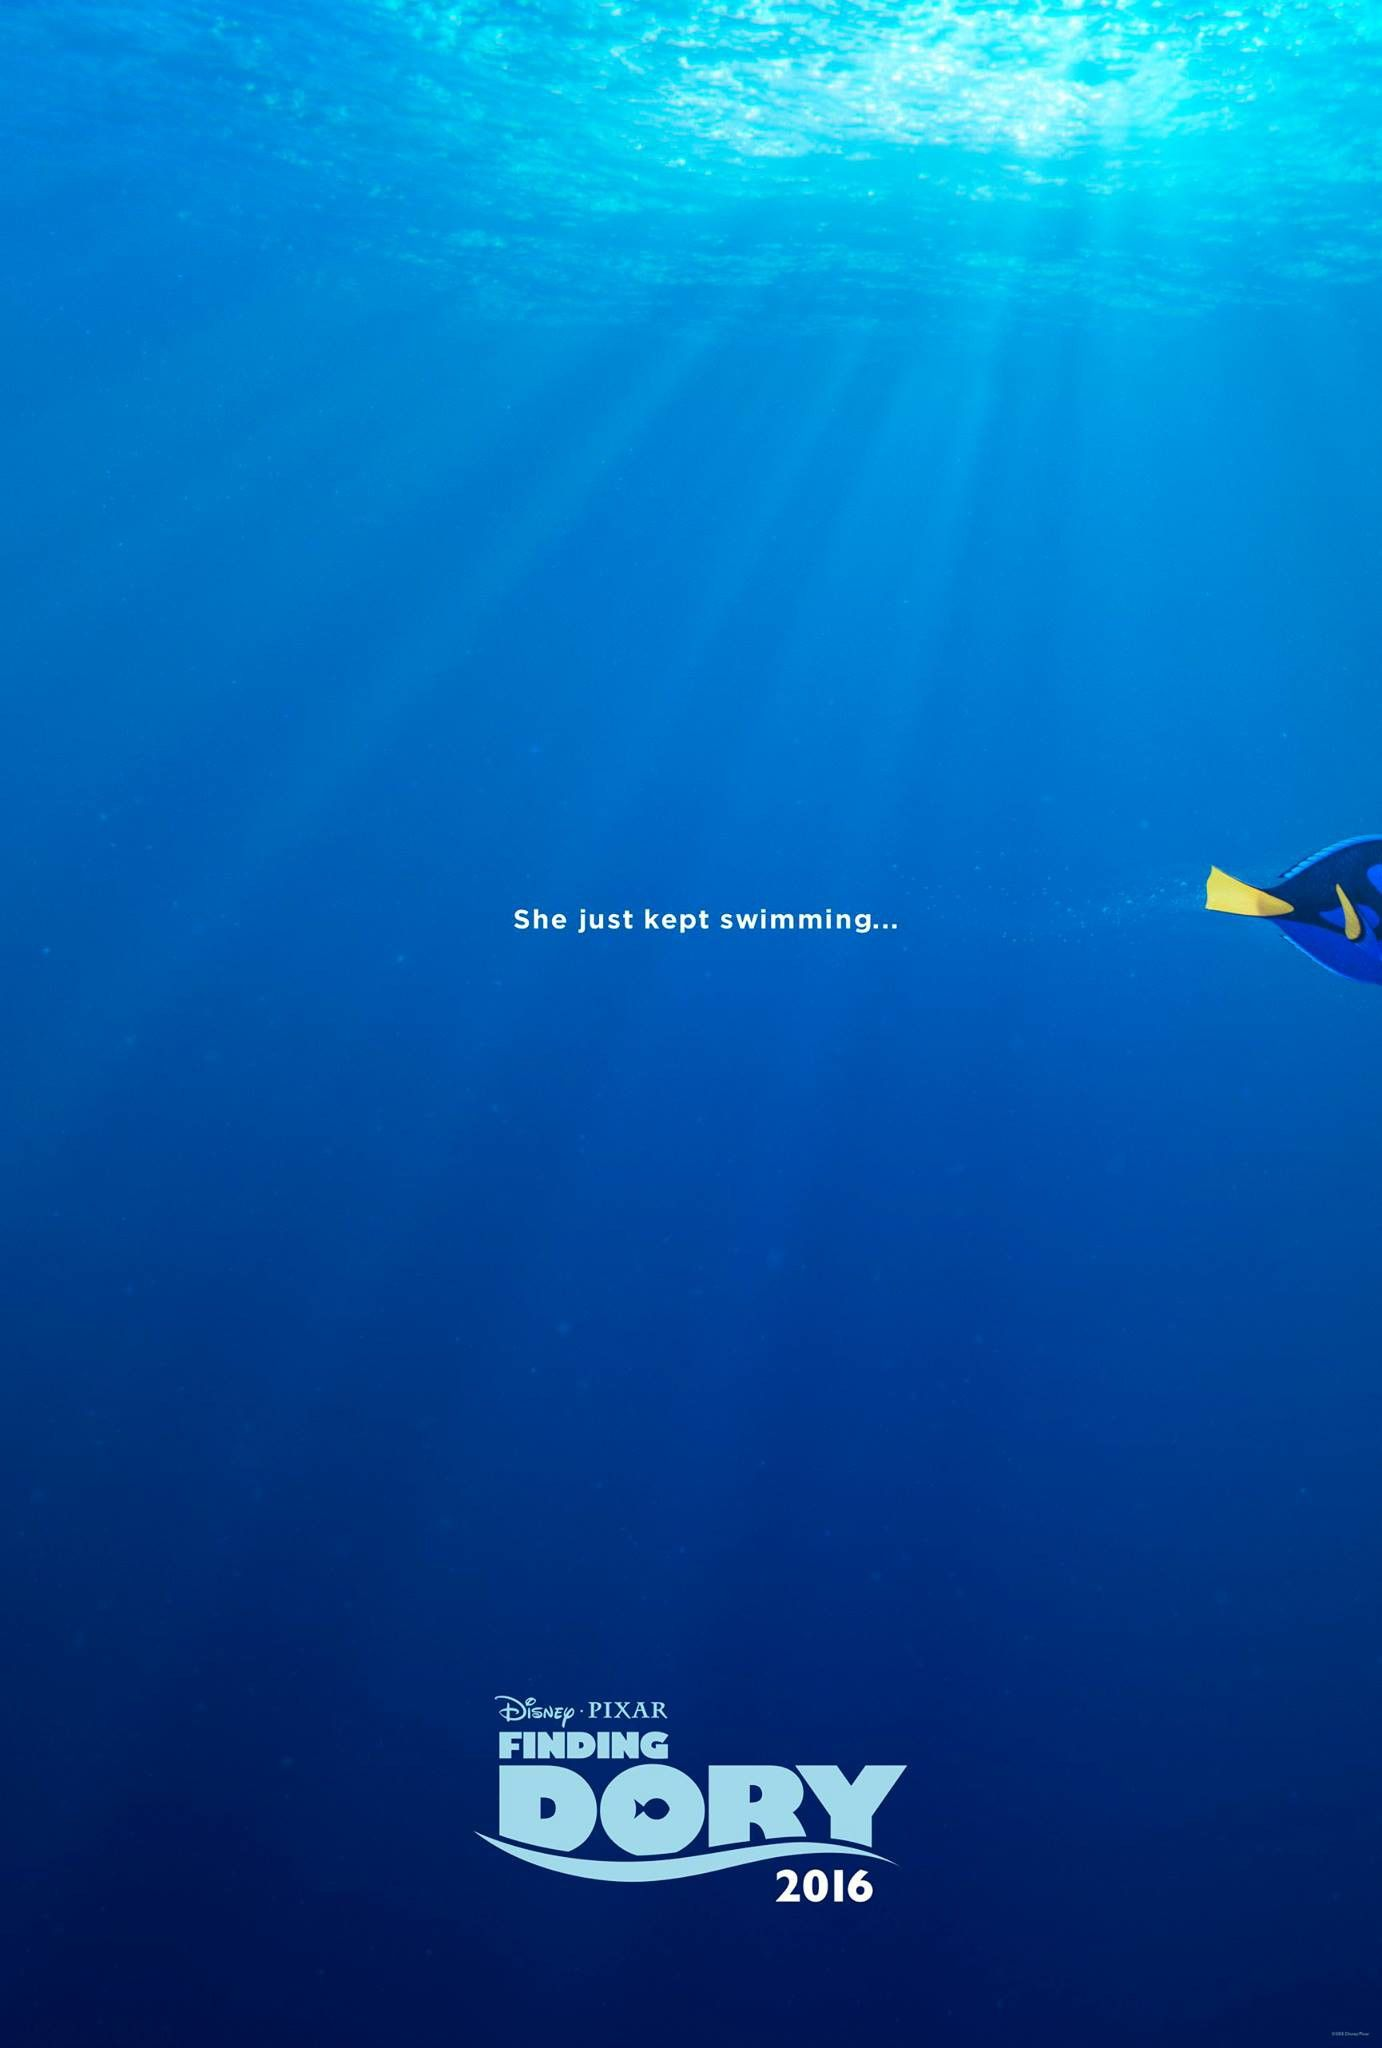 Dory Quotes Classy Finding Dory Poster  All Things Disney  Pinterest  Finding Dory . Design Ideas